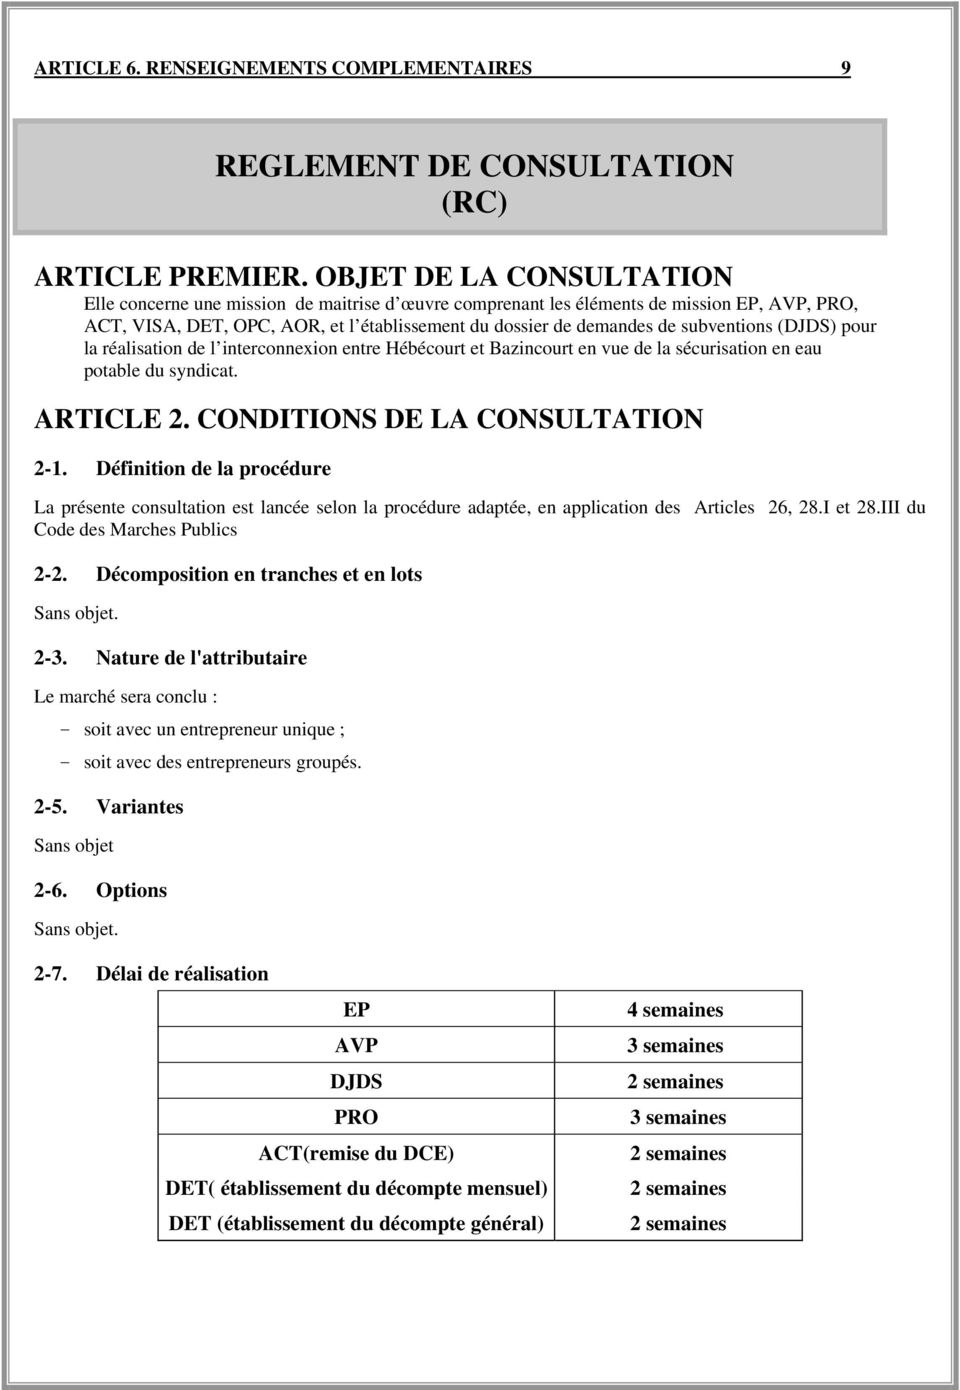 subventions (DJDS) pour la réalisation de l interconnexion entre Hébécourt et Bazincourt en vue de la sécurisation en eau potable du syndicat. ARTICLE 2. CONDITIONS DE LA CONSULTATION 2-1.